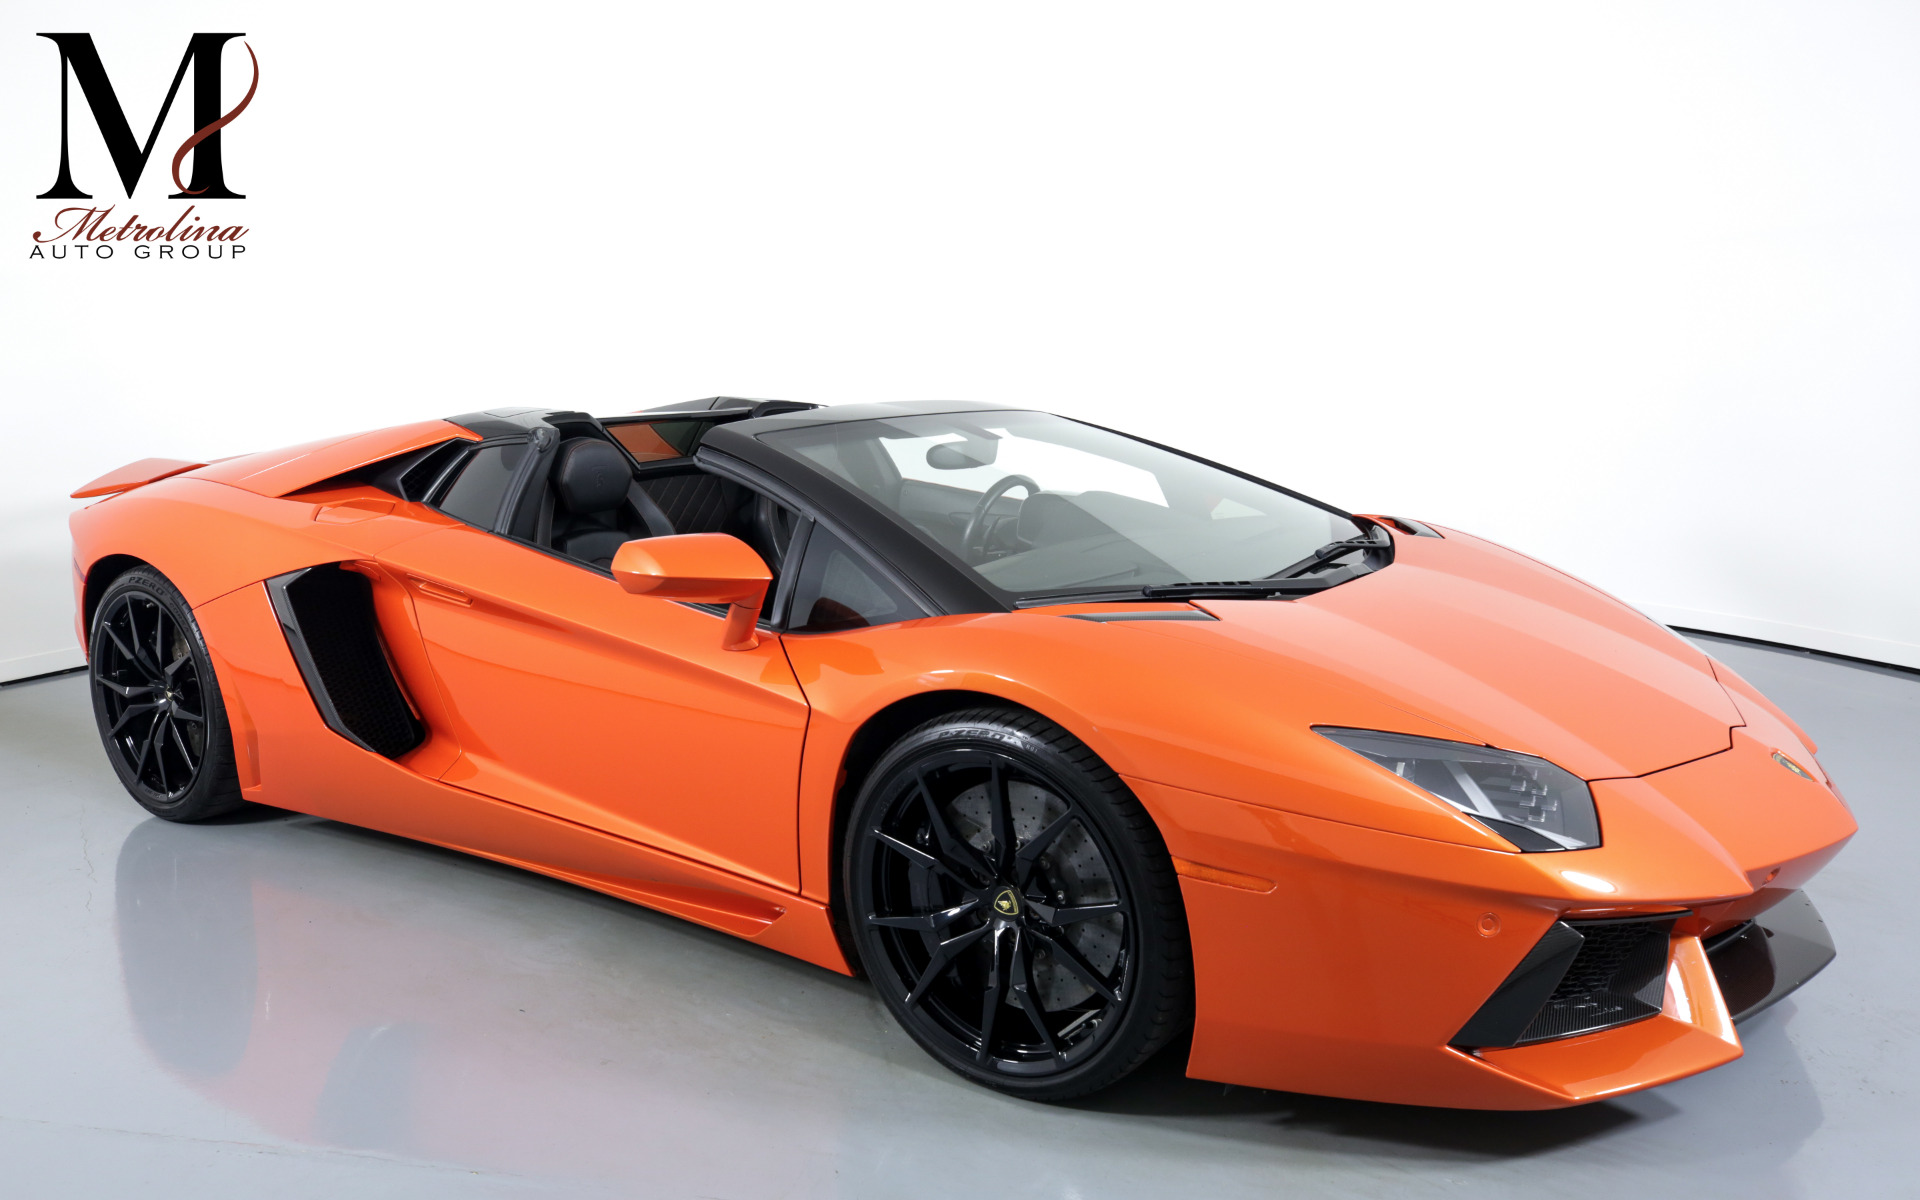 Used 2015 Lamborghini Aventador LP 700-4 for sale $399,996 at Metrolina Auto Group in Charlotte NC 28217 - 1